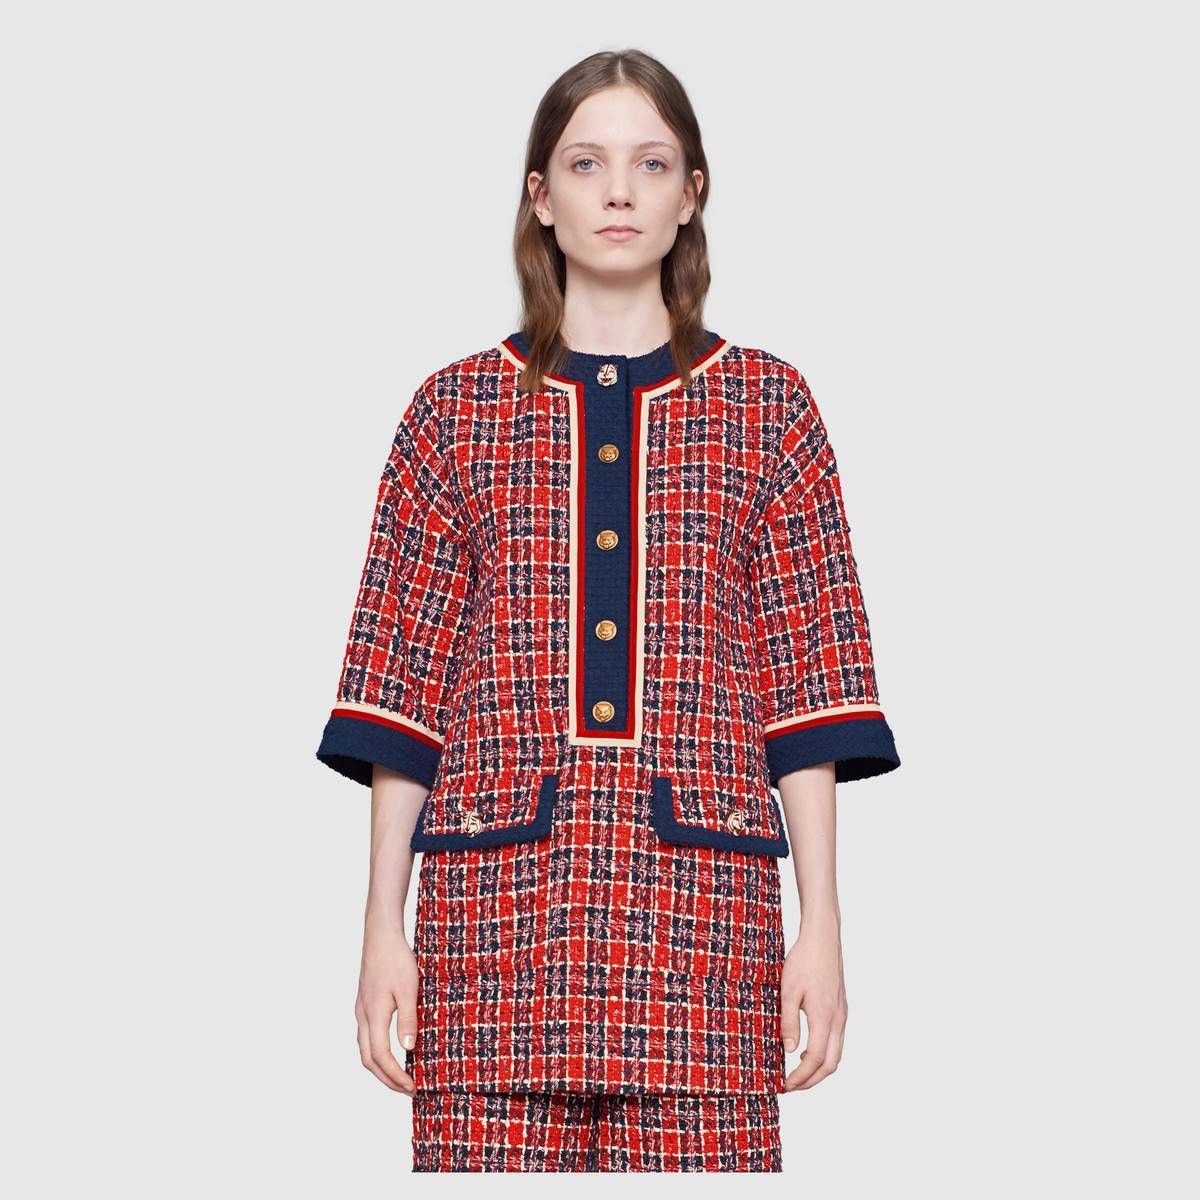 c8ced2f599c Tweed check tunic dress in Hibiscus red, blue and white tweed check with  contrast dark blue profiles   Gucci Women's Dresses